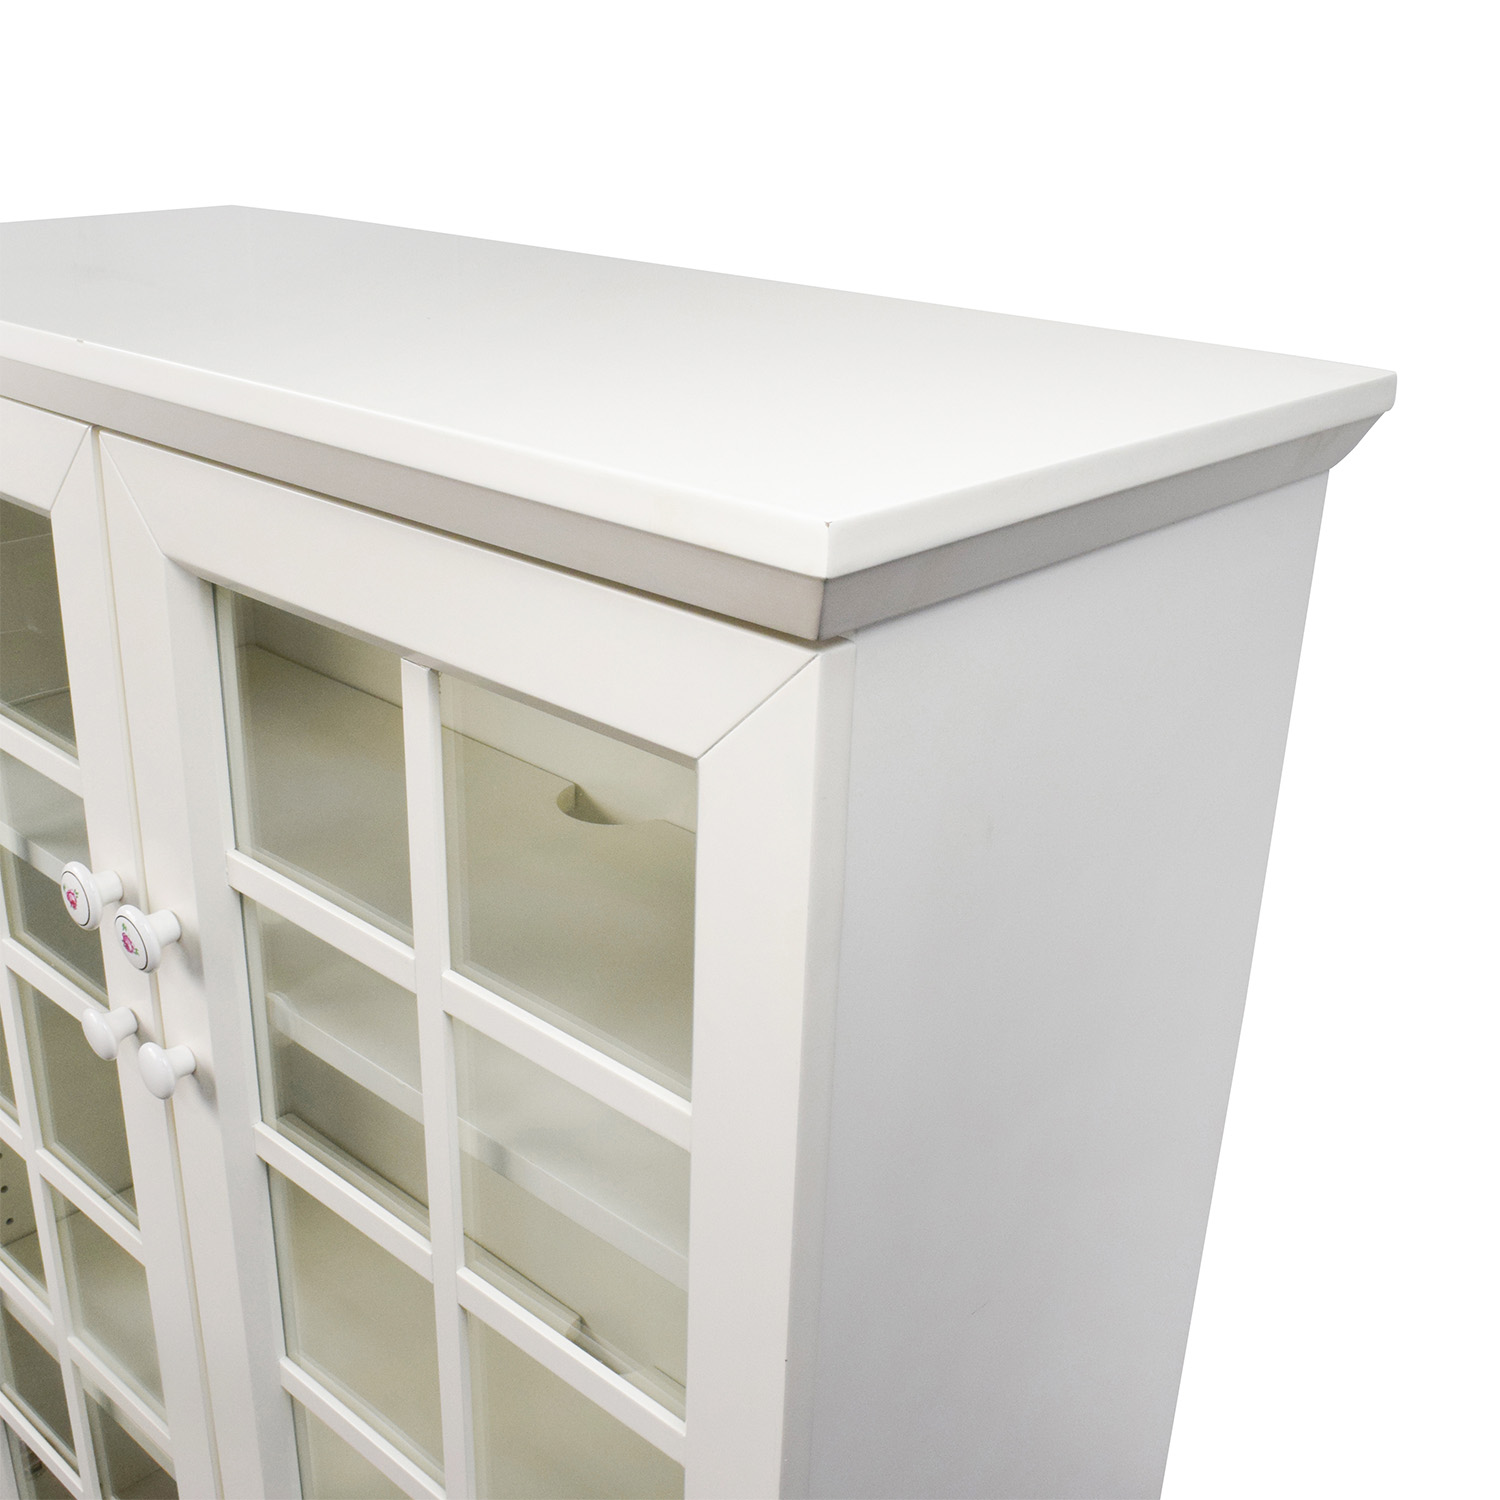 48 Off Crate And Barrel Crate And Barrel White China Cabinet Storage